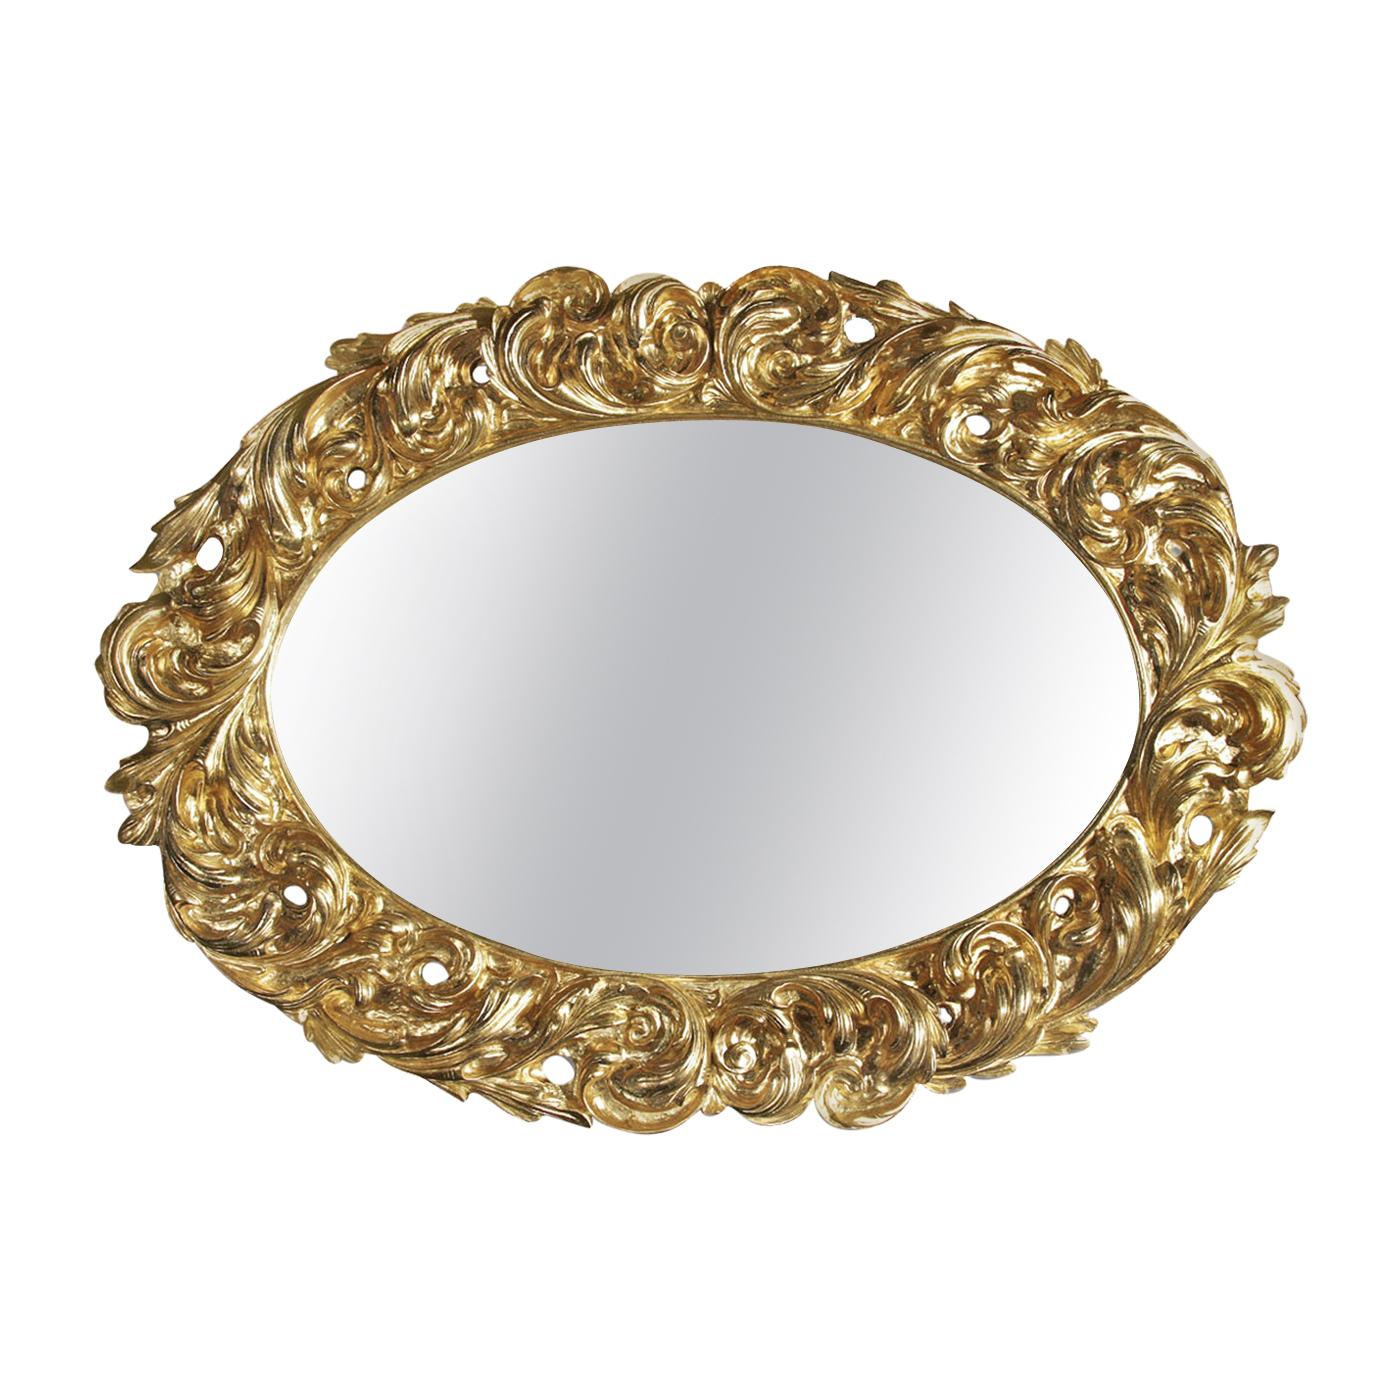 Oval Mirror with Gold Leaf